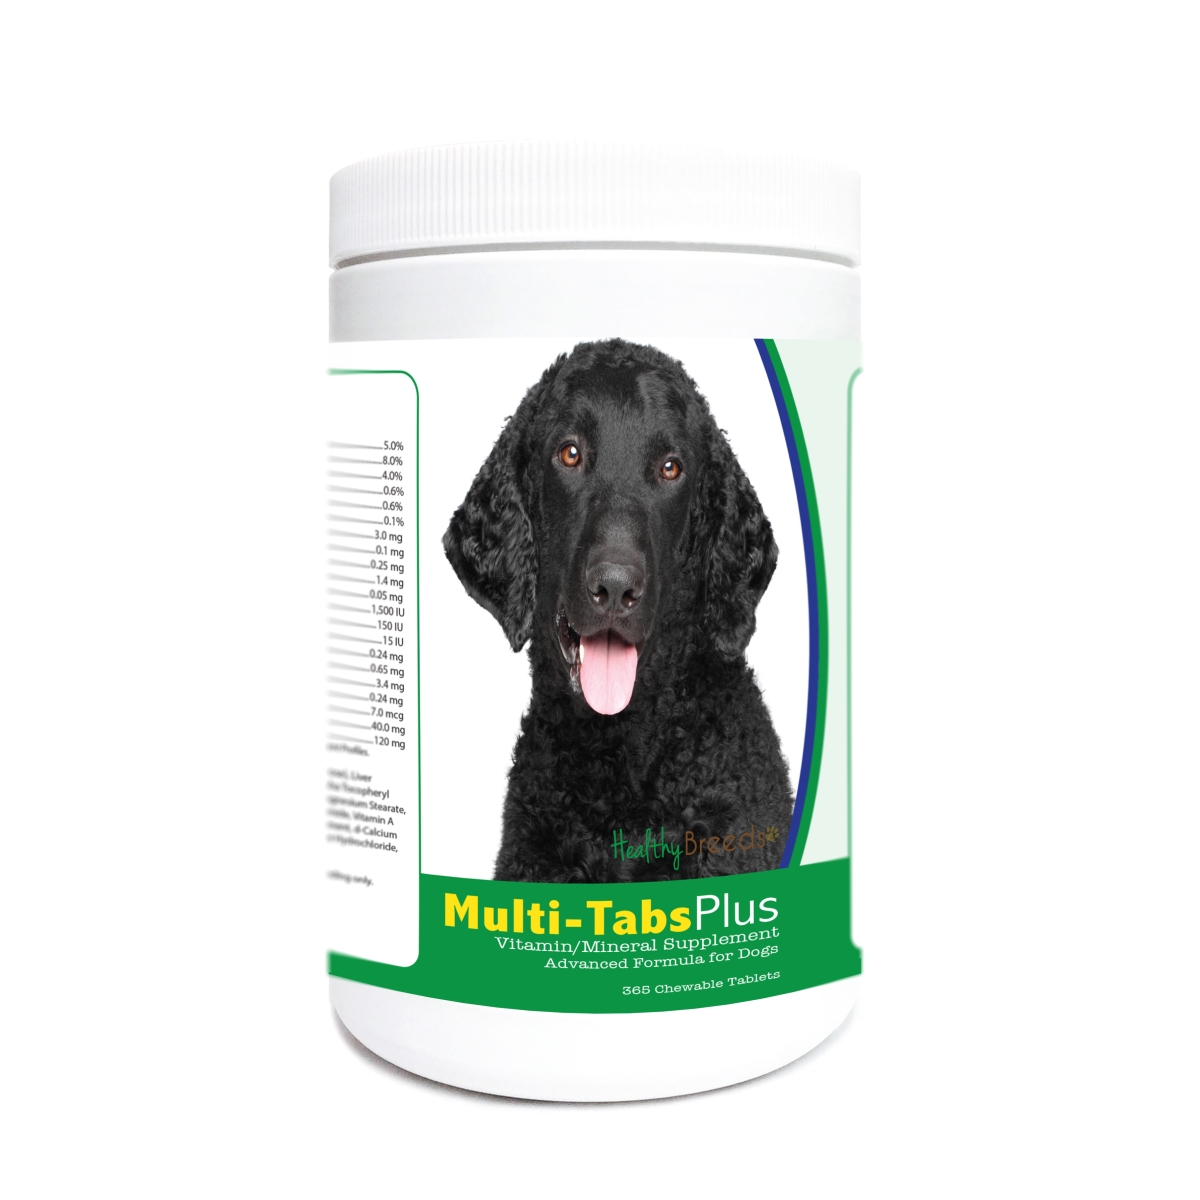 Healthy Breeds 840235171904 Curly-Coated Retriever Multi-Tabs Plus Chewable Tablets - 365 Count